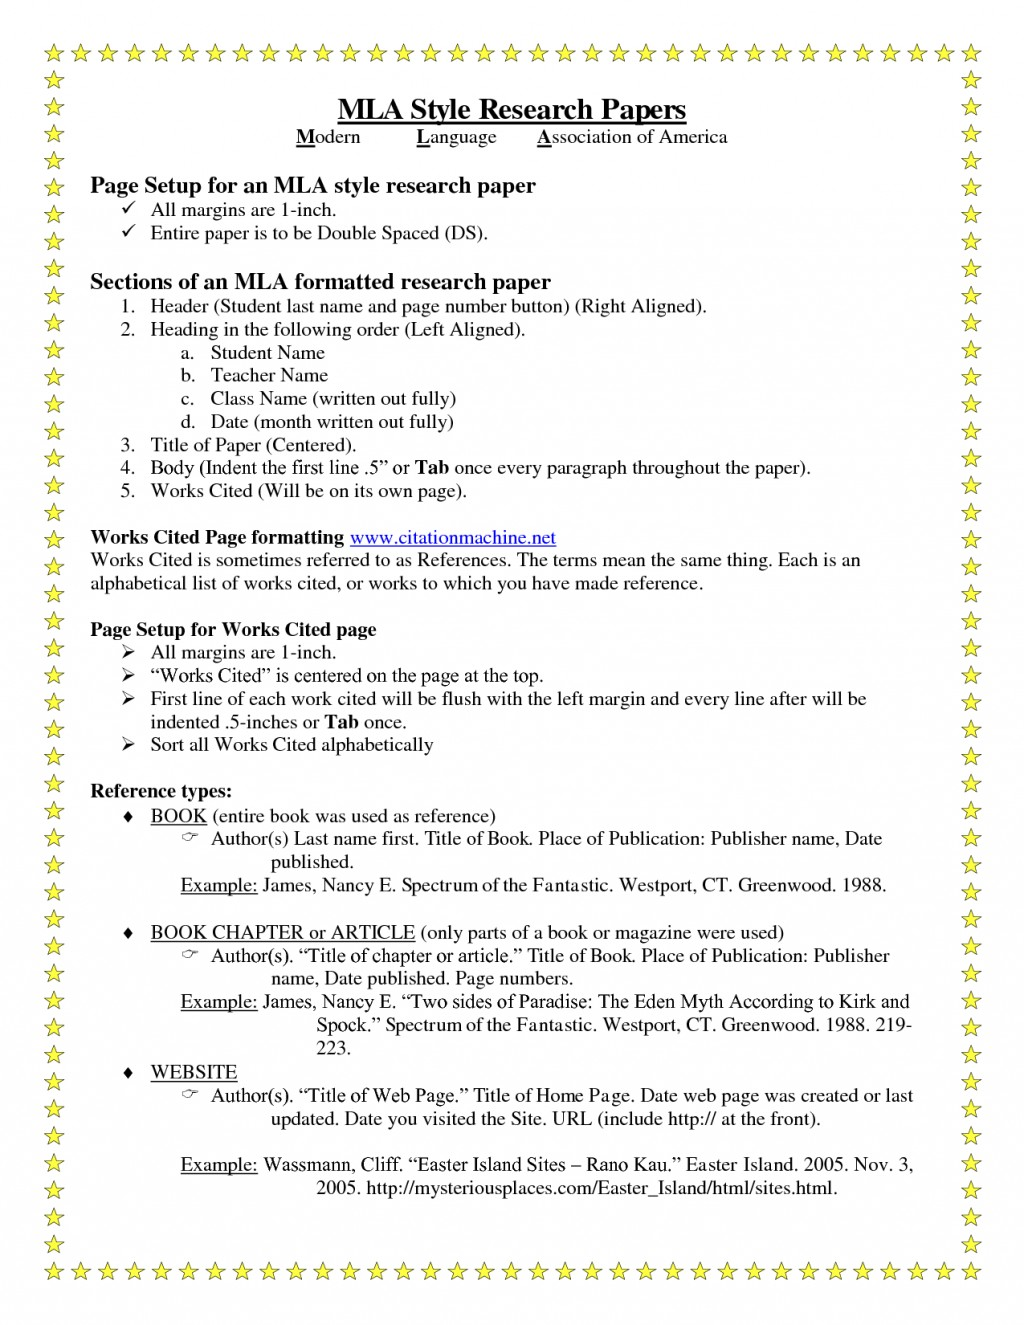 005 Order Of Headings In Research Paper Striking Papers Large